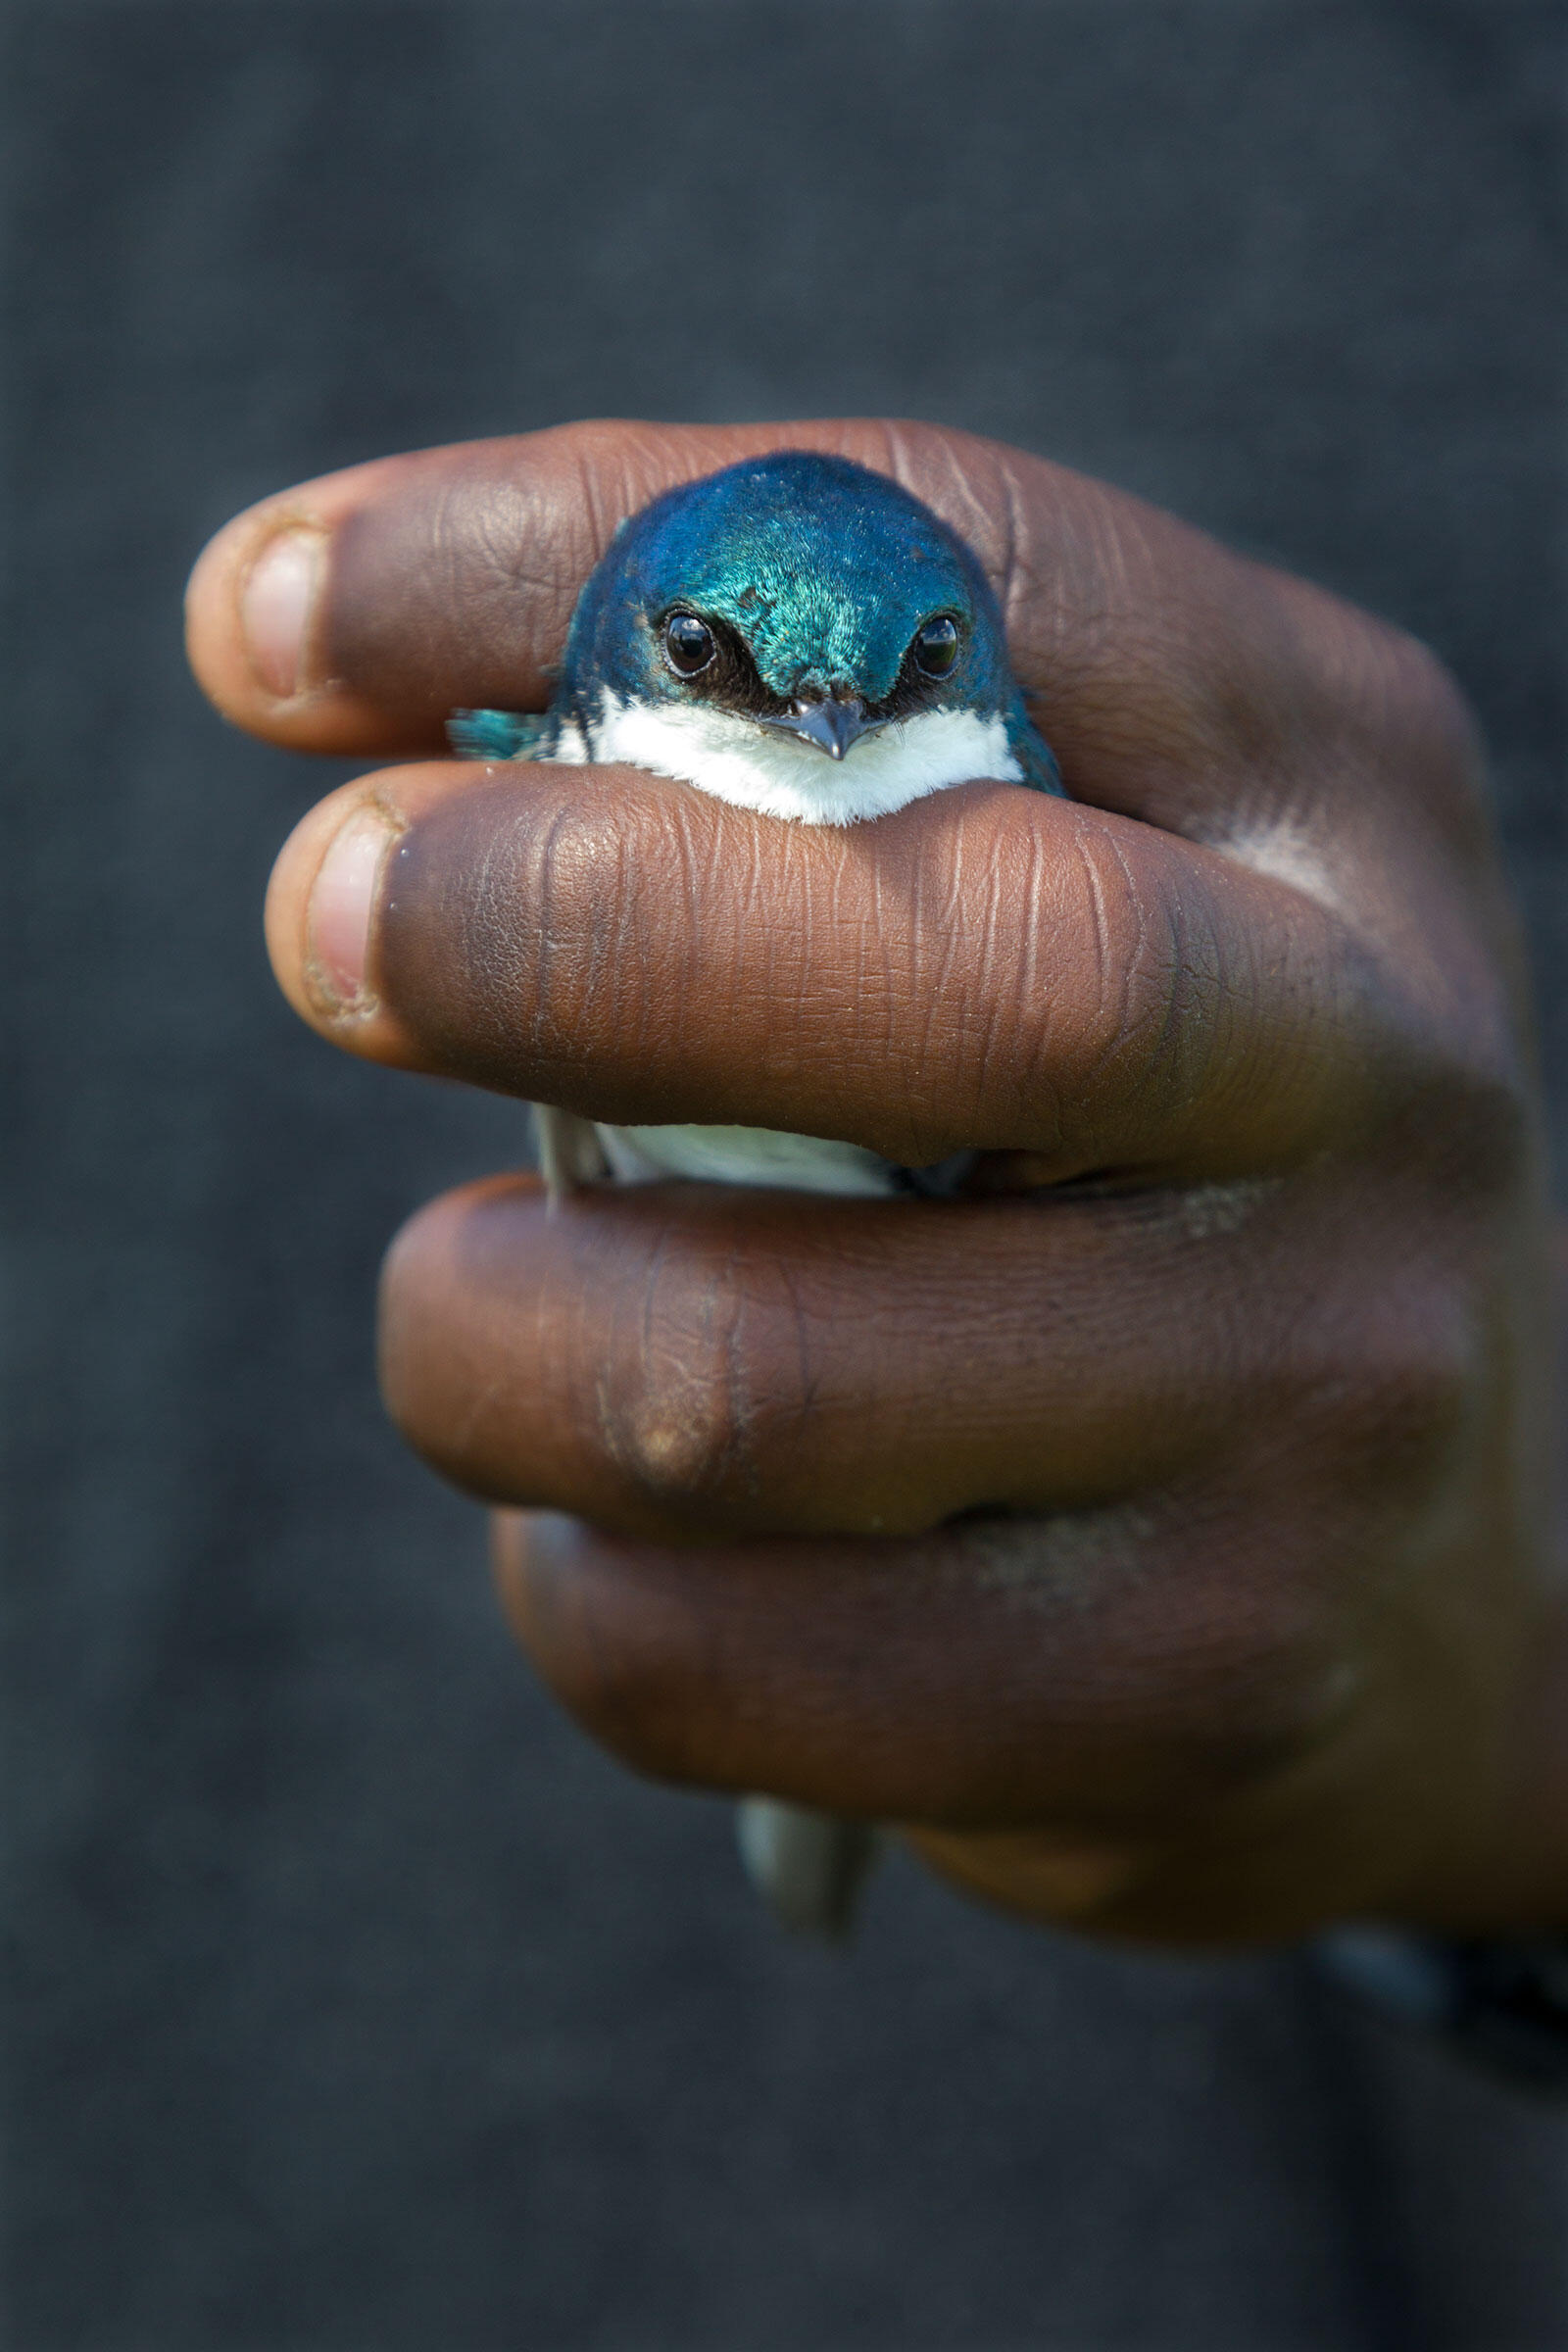 Bagonluri holds a Tree Swallow as he prepares to measure and band it. Swallows that live near industrial-scale farms, the team has found, have much less body fat than those that live in more natural grassy areas. Connor Stefanison